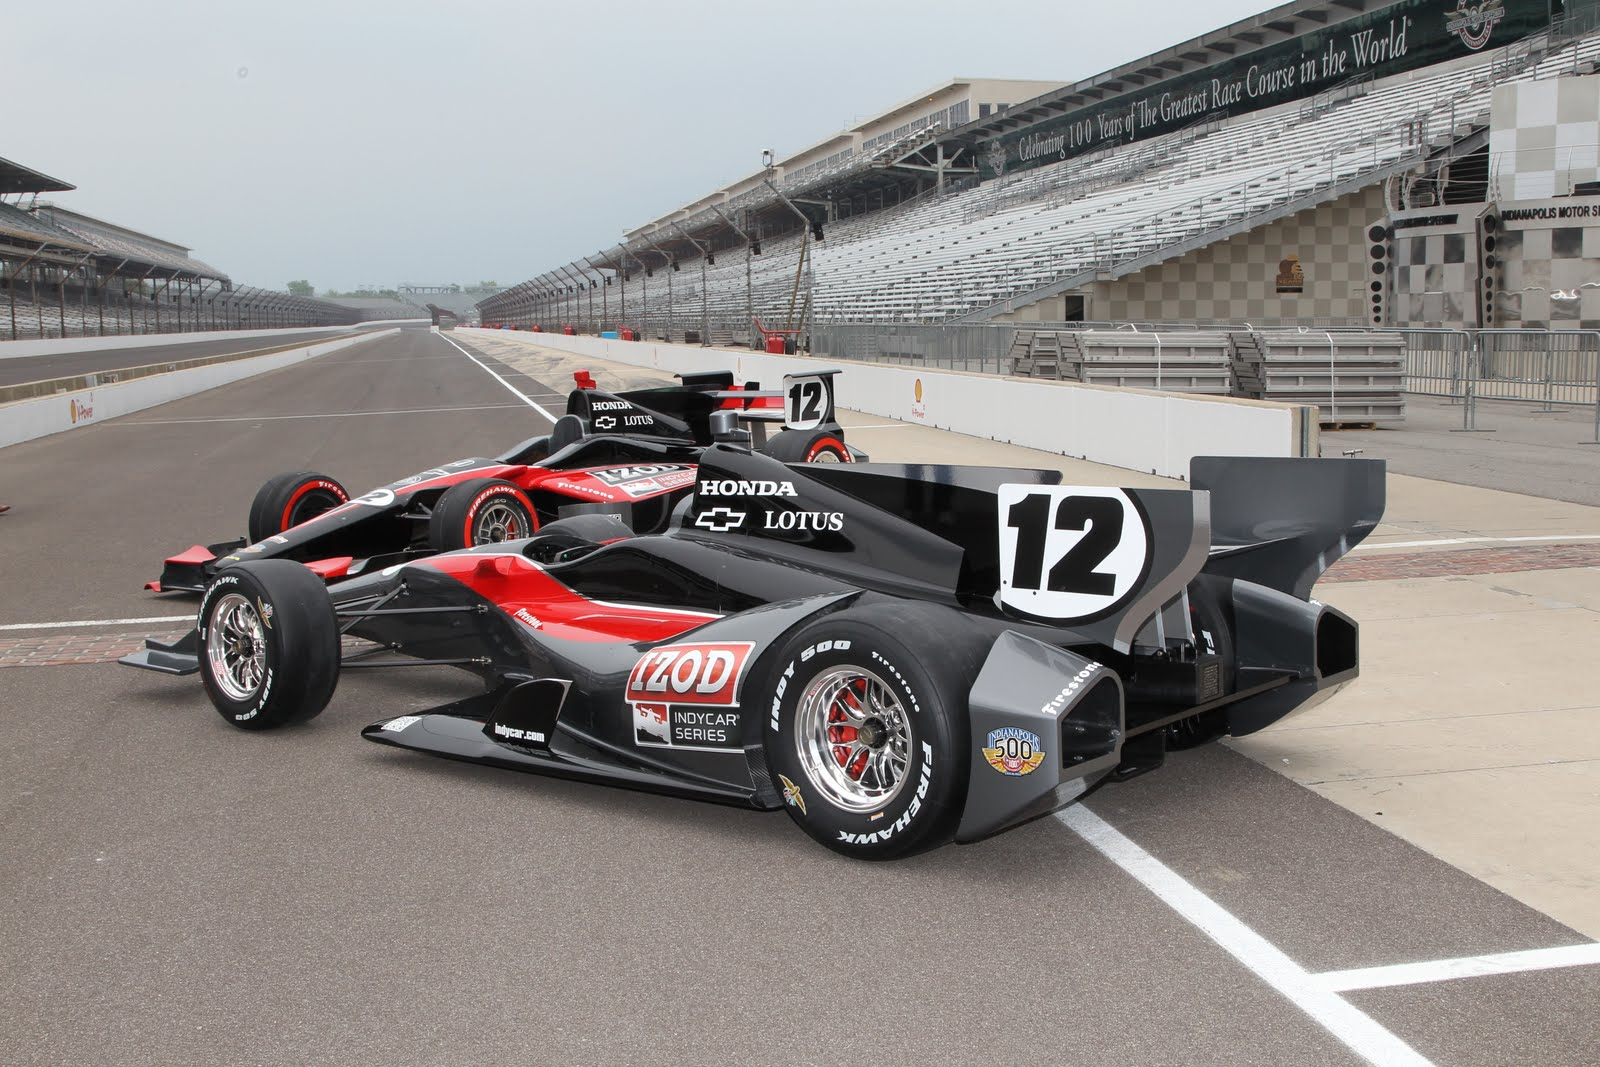 New Indy Car Vs Old